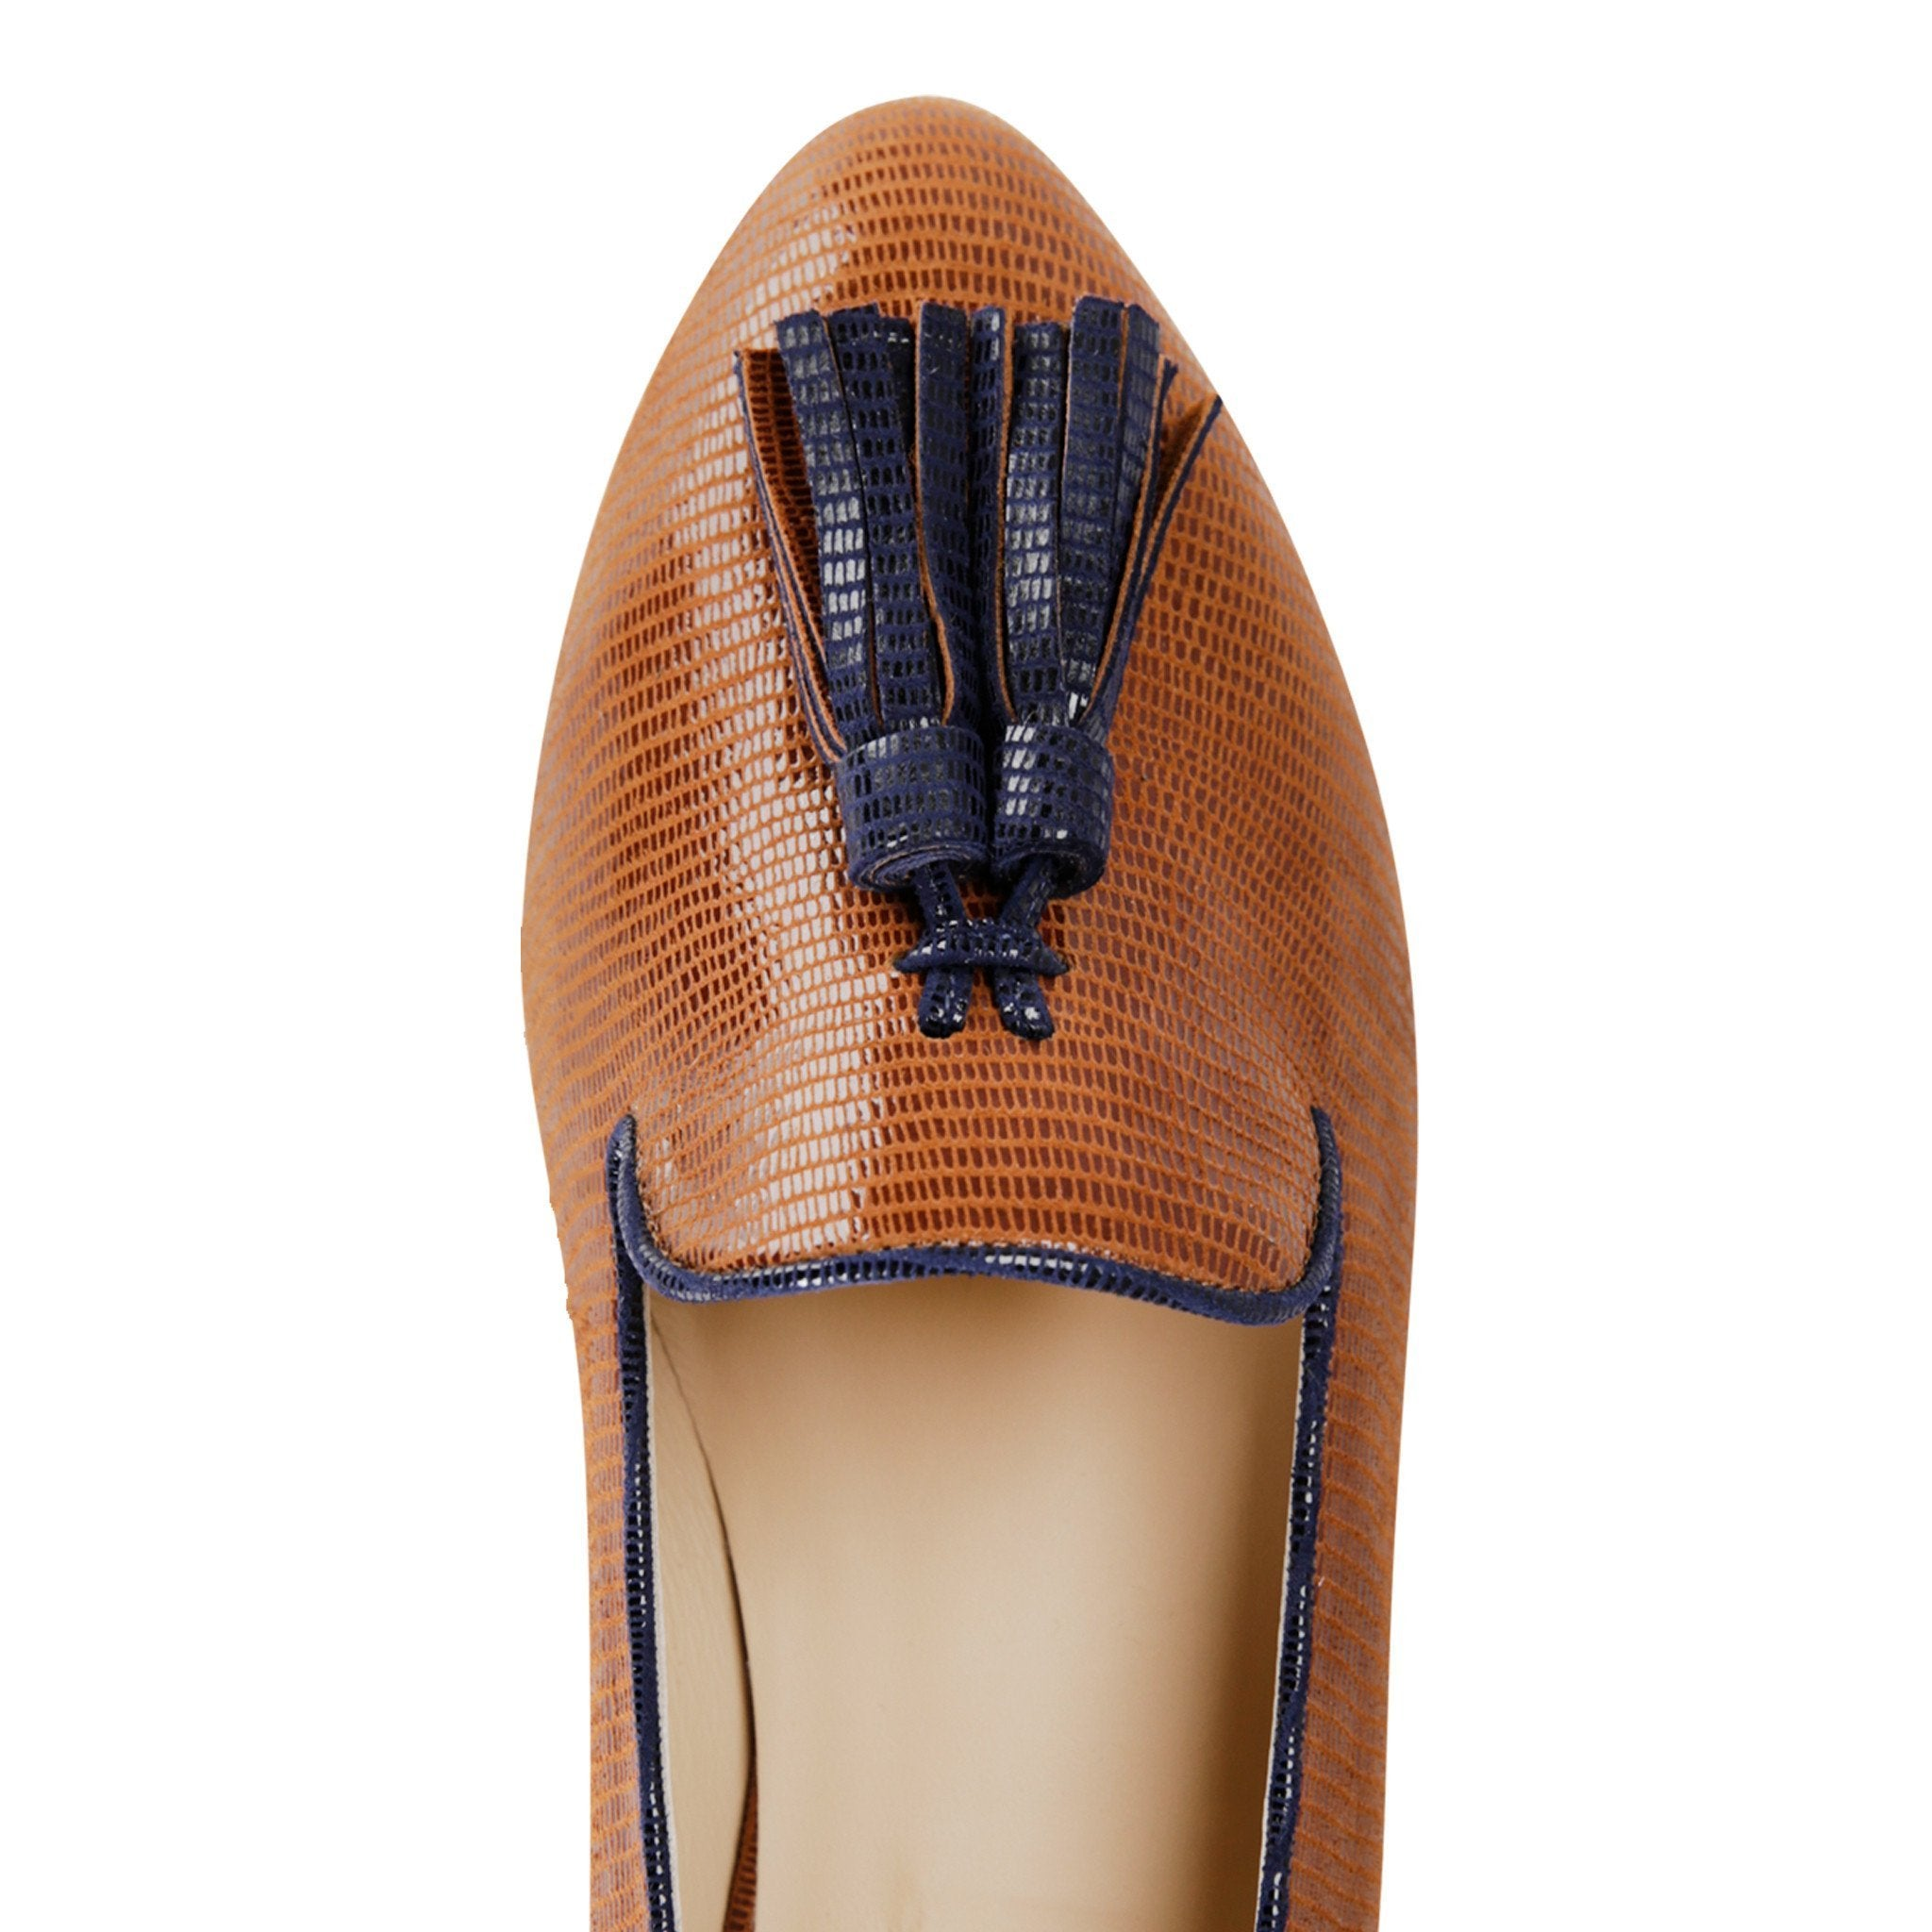 PARMA - Varanus Dune + Midnight, VIAJIYU - Women's Hand Made Sustainable Luxury Shoes. Made in Italy. Made to Order.